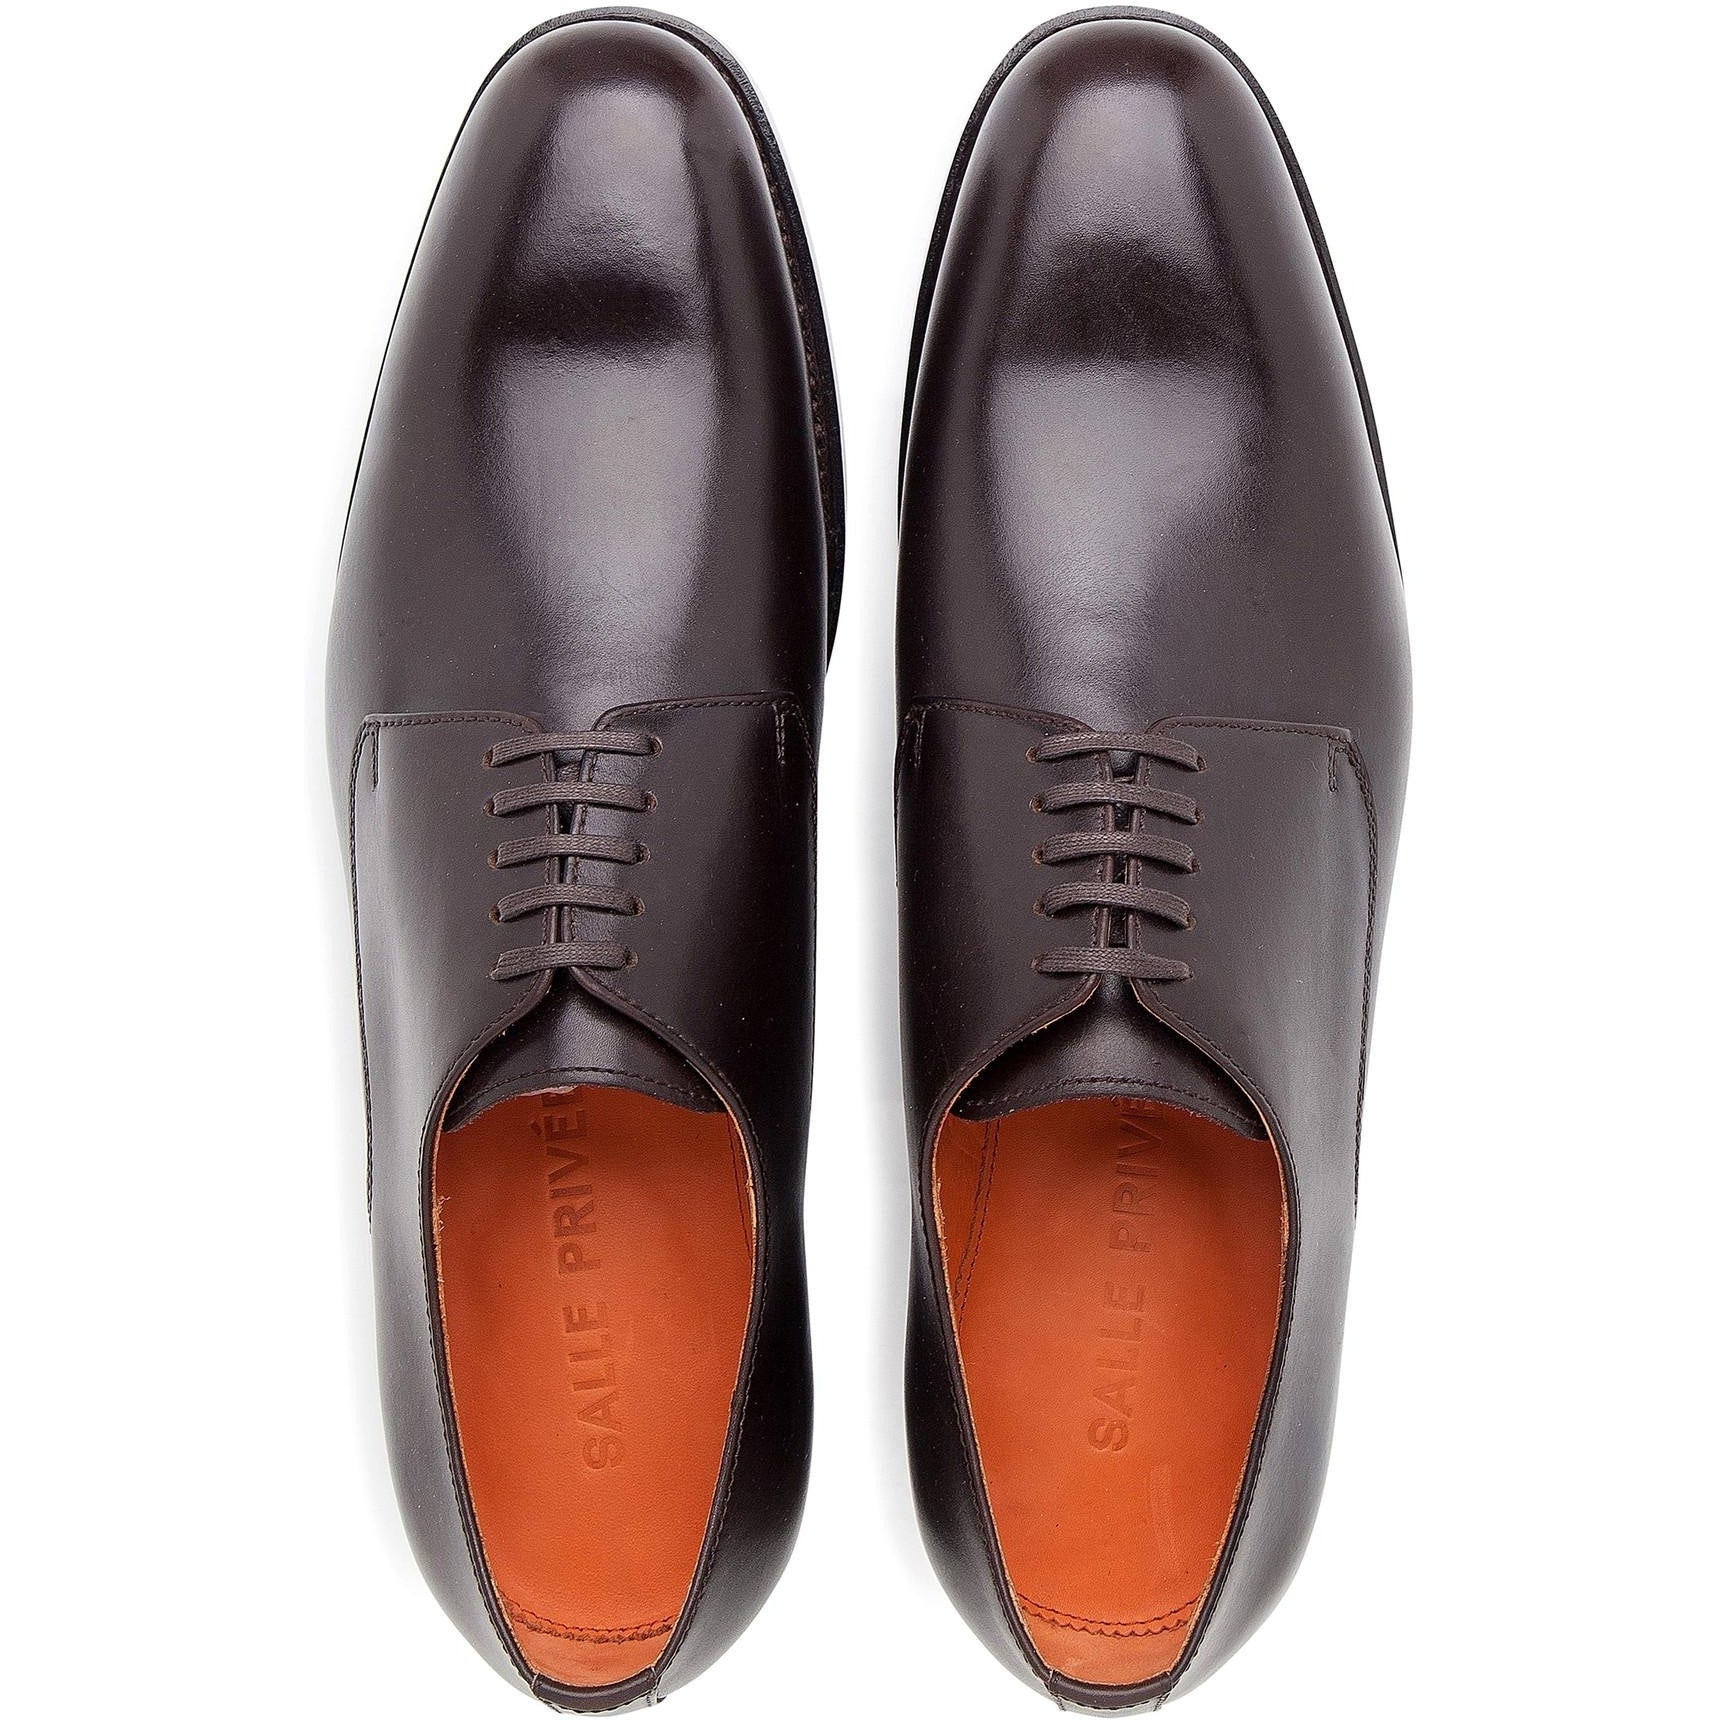 Logan derby shoes